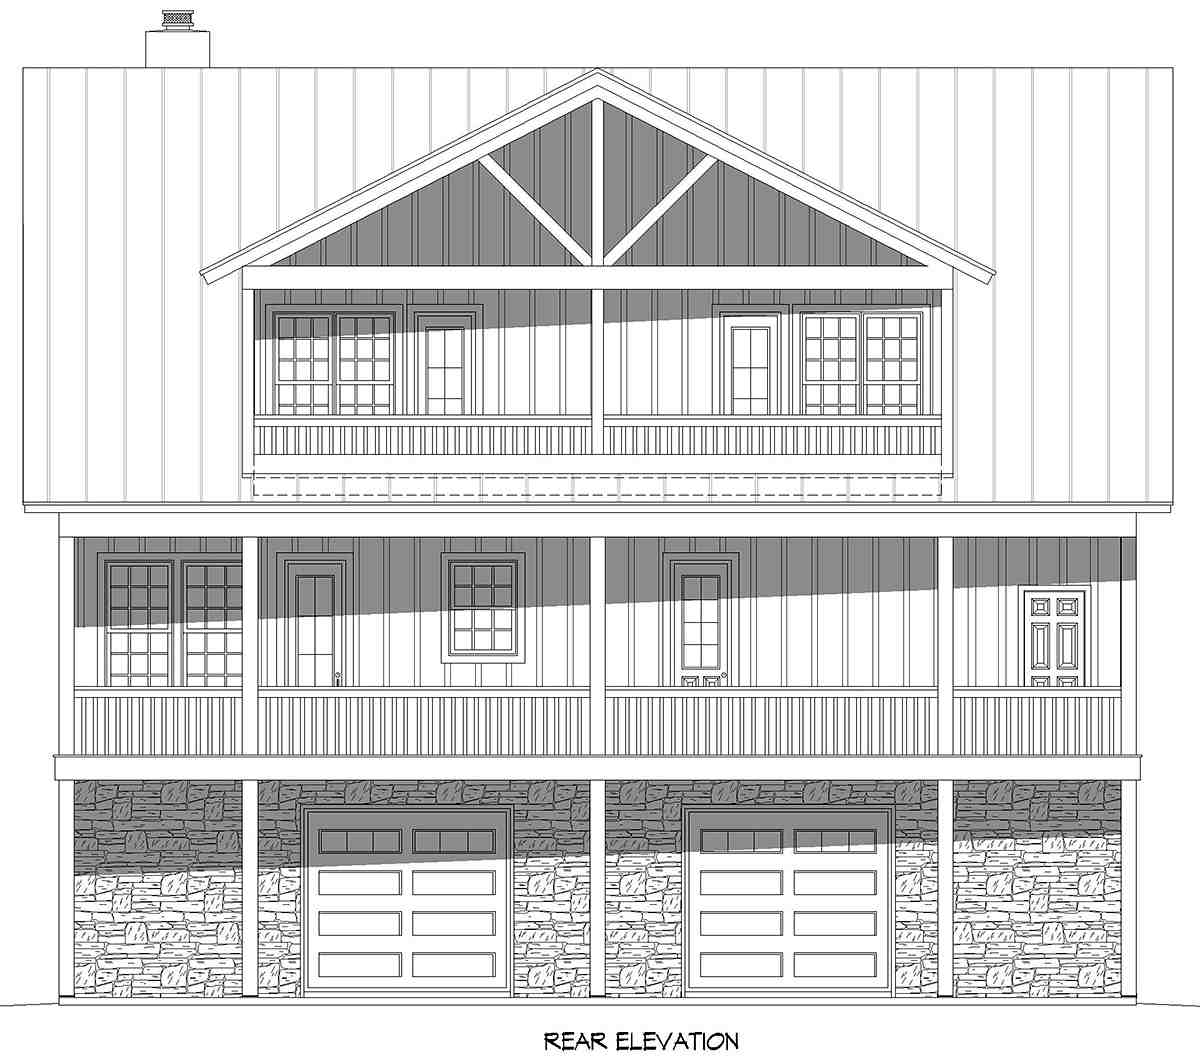 Bungalow, Country, Craftsman, Farmhouse House Plan 52140 with 3 Beds, 4 Baths, 2 Car Garage Rear Elevation